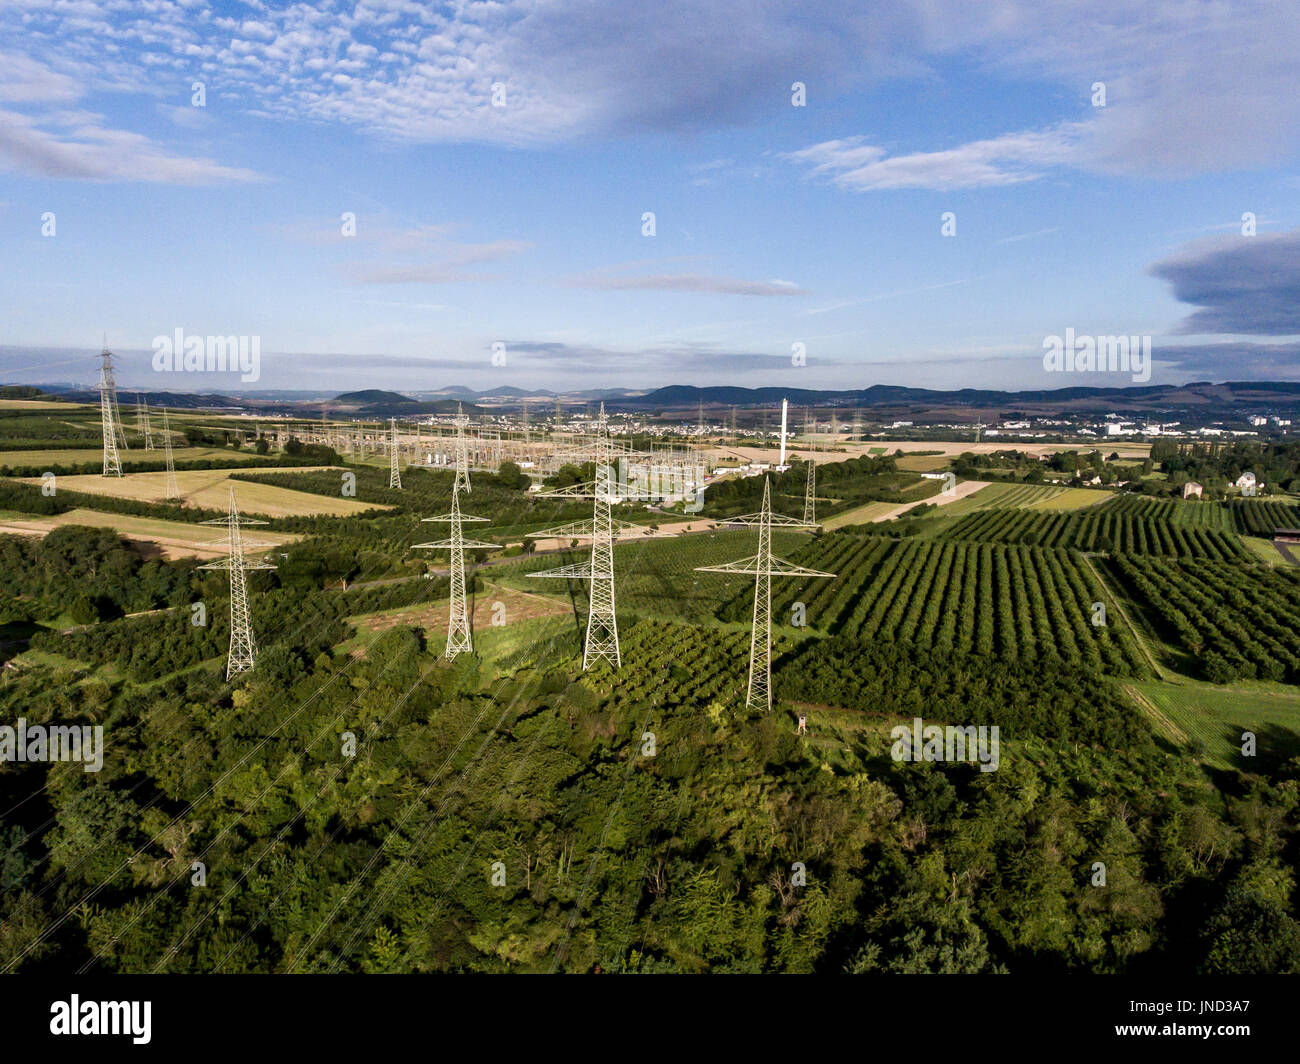 electricity pylon top view stockfotos electricity pylon top view bilder alamy. Black Bedroom Furniture Sets. Home Design Ideas